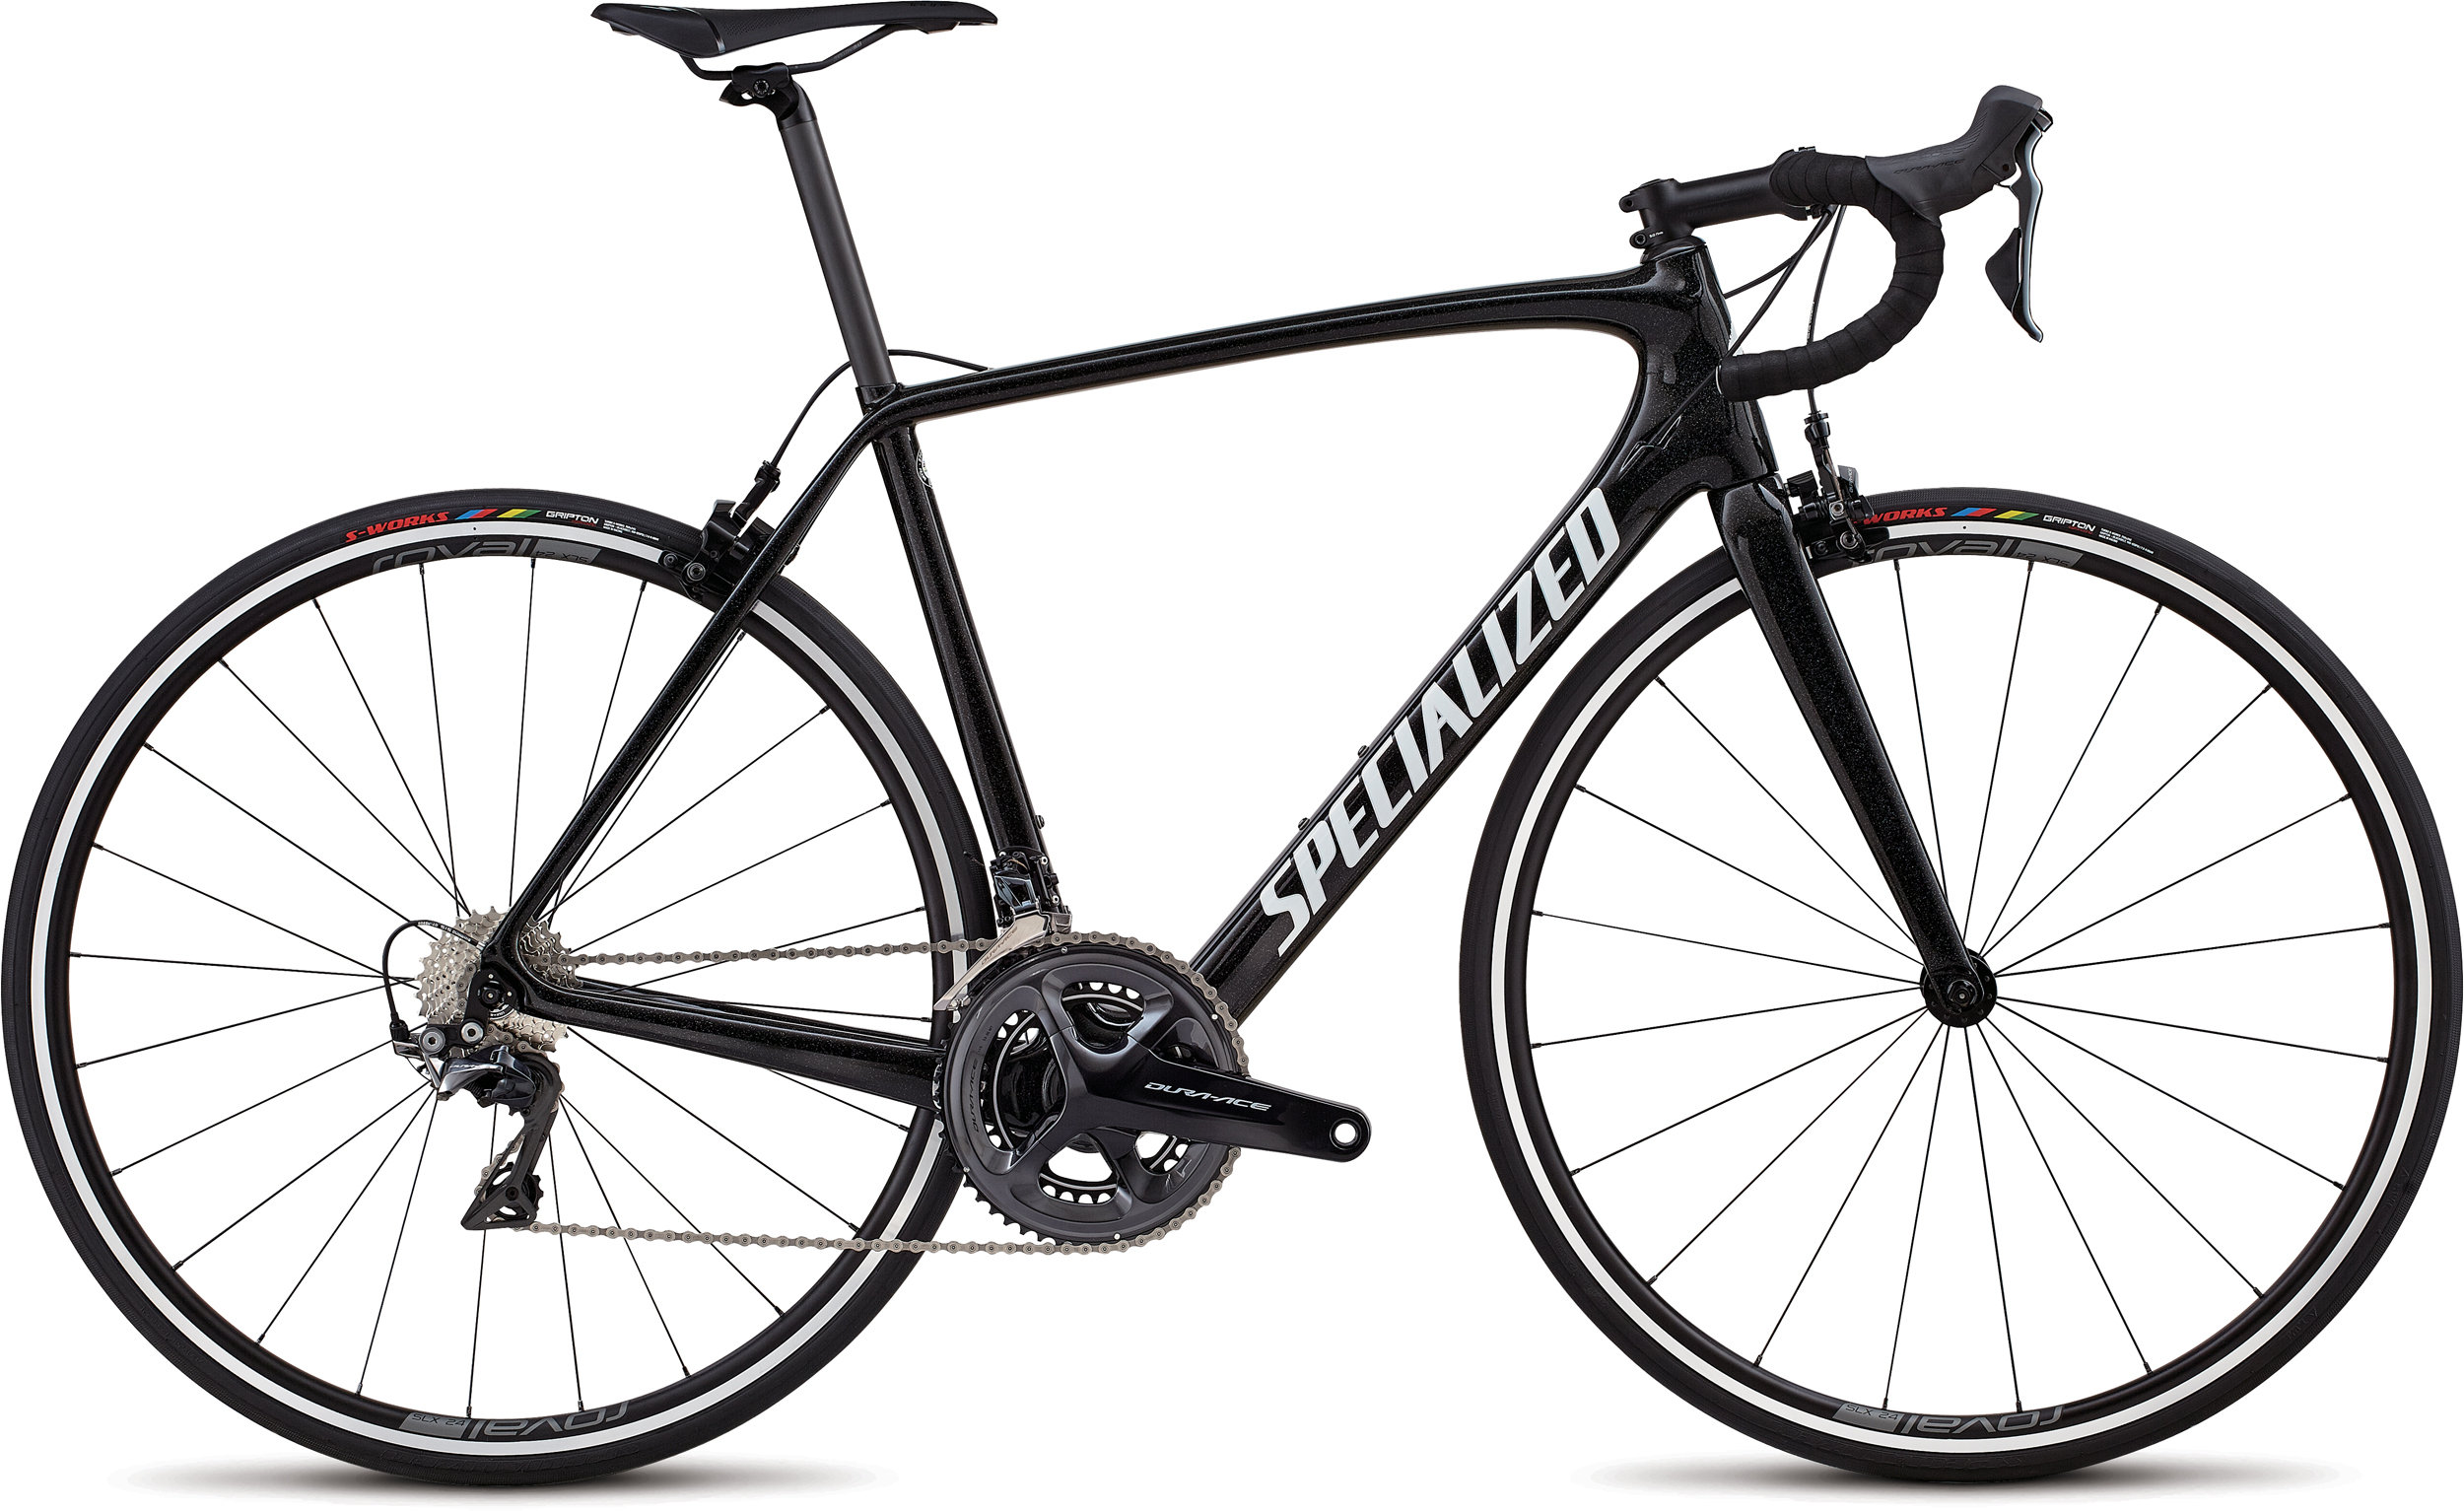 Specialized Men´s Tarmac SL5 Expert DA Cosmic Black/White/Hollogram/Clean 49 - Randen Bike GmbH